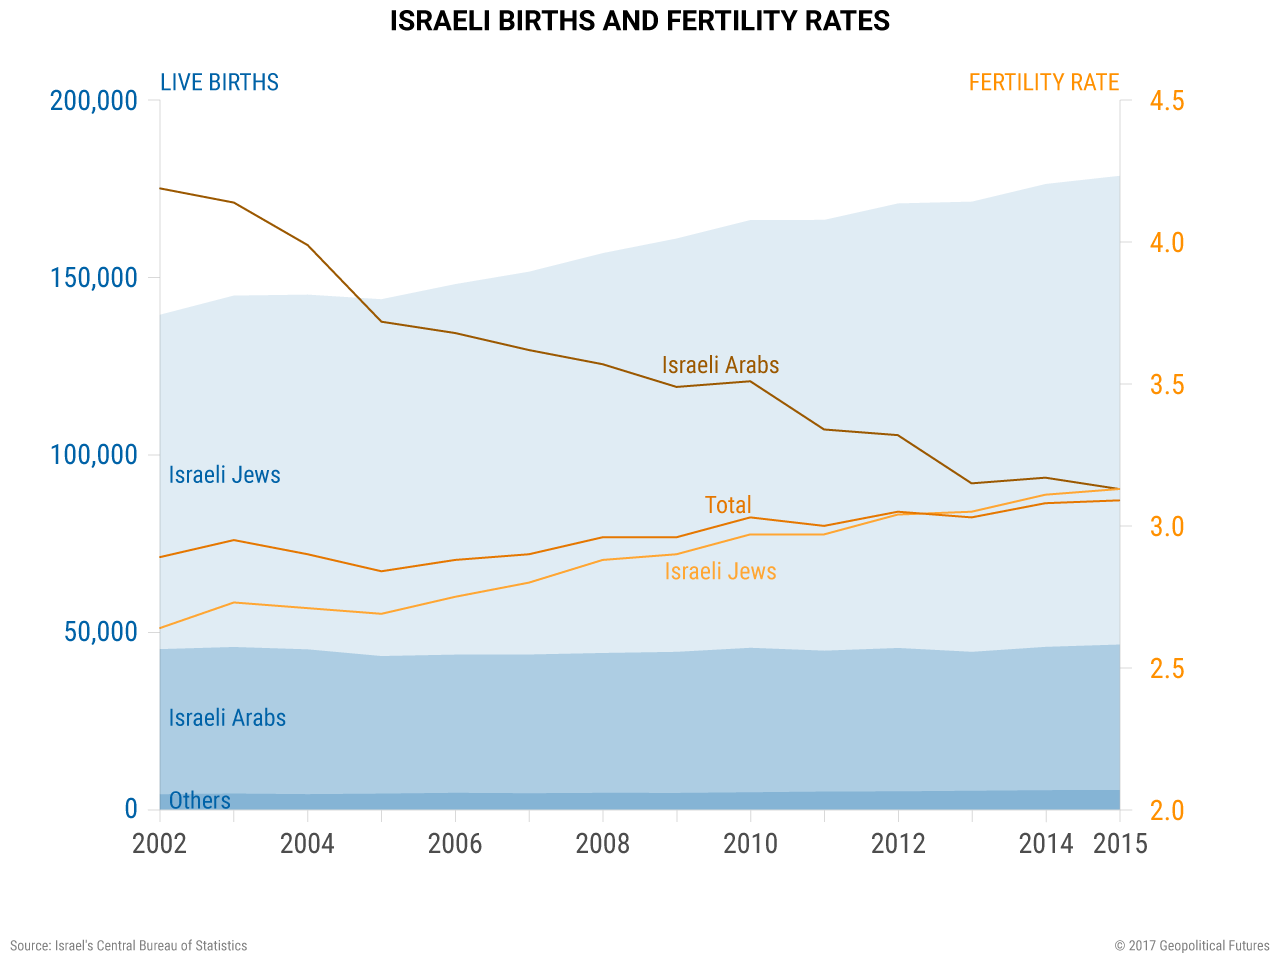 Israeli Births and Fertility Rates